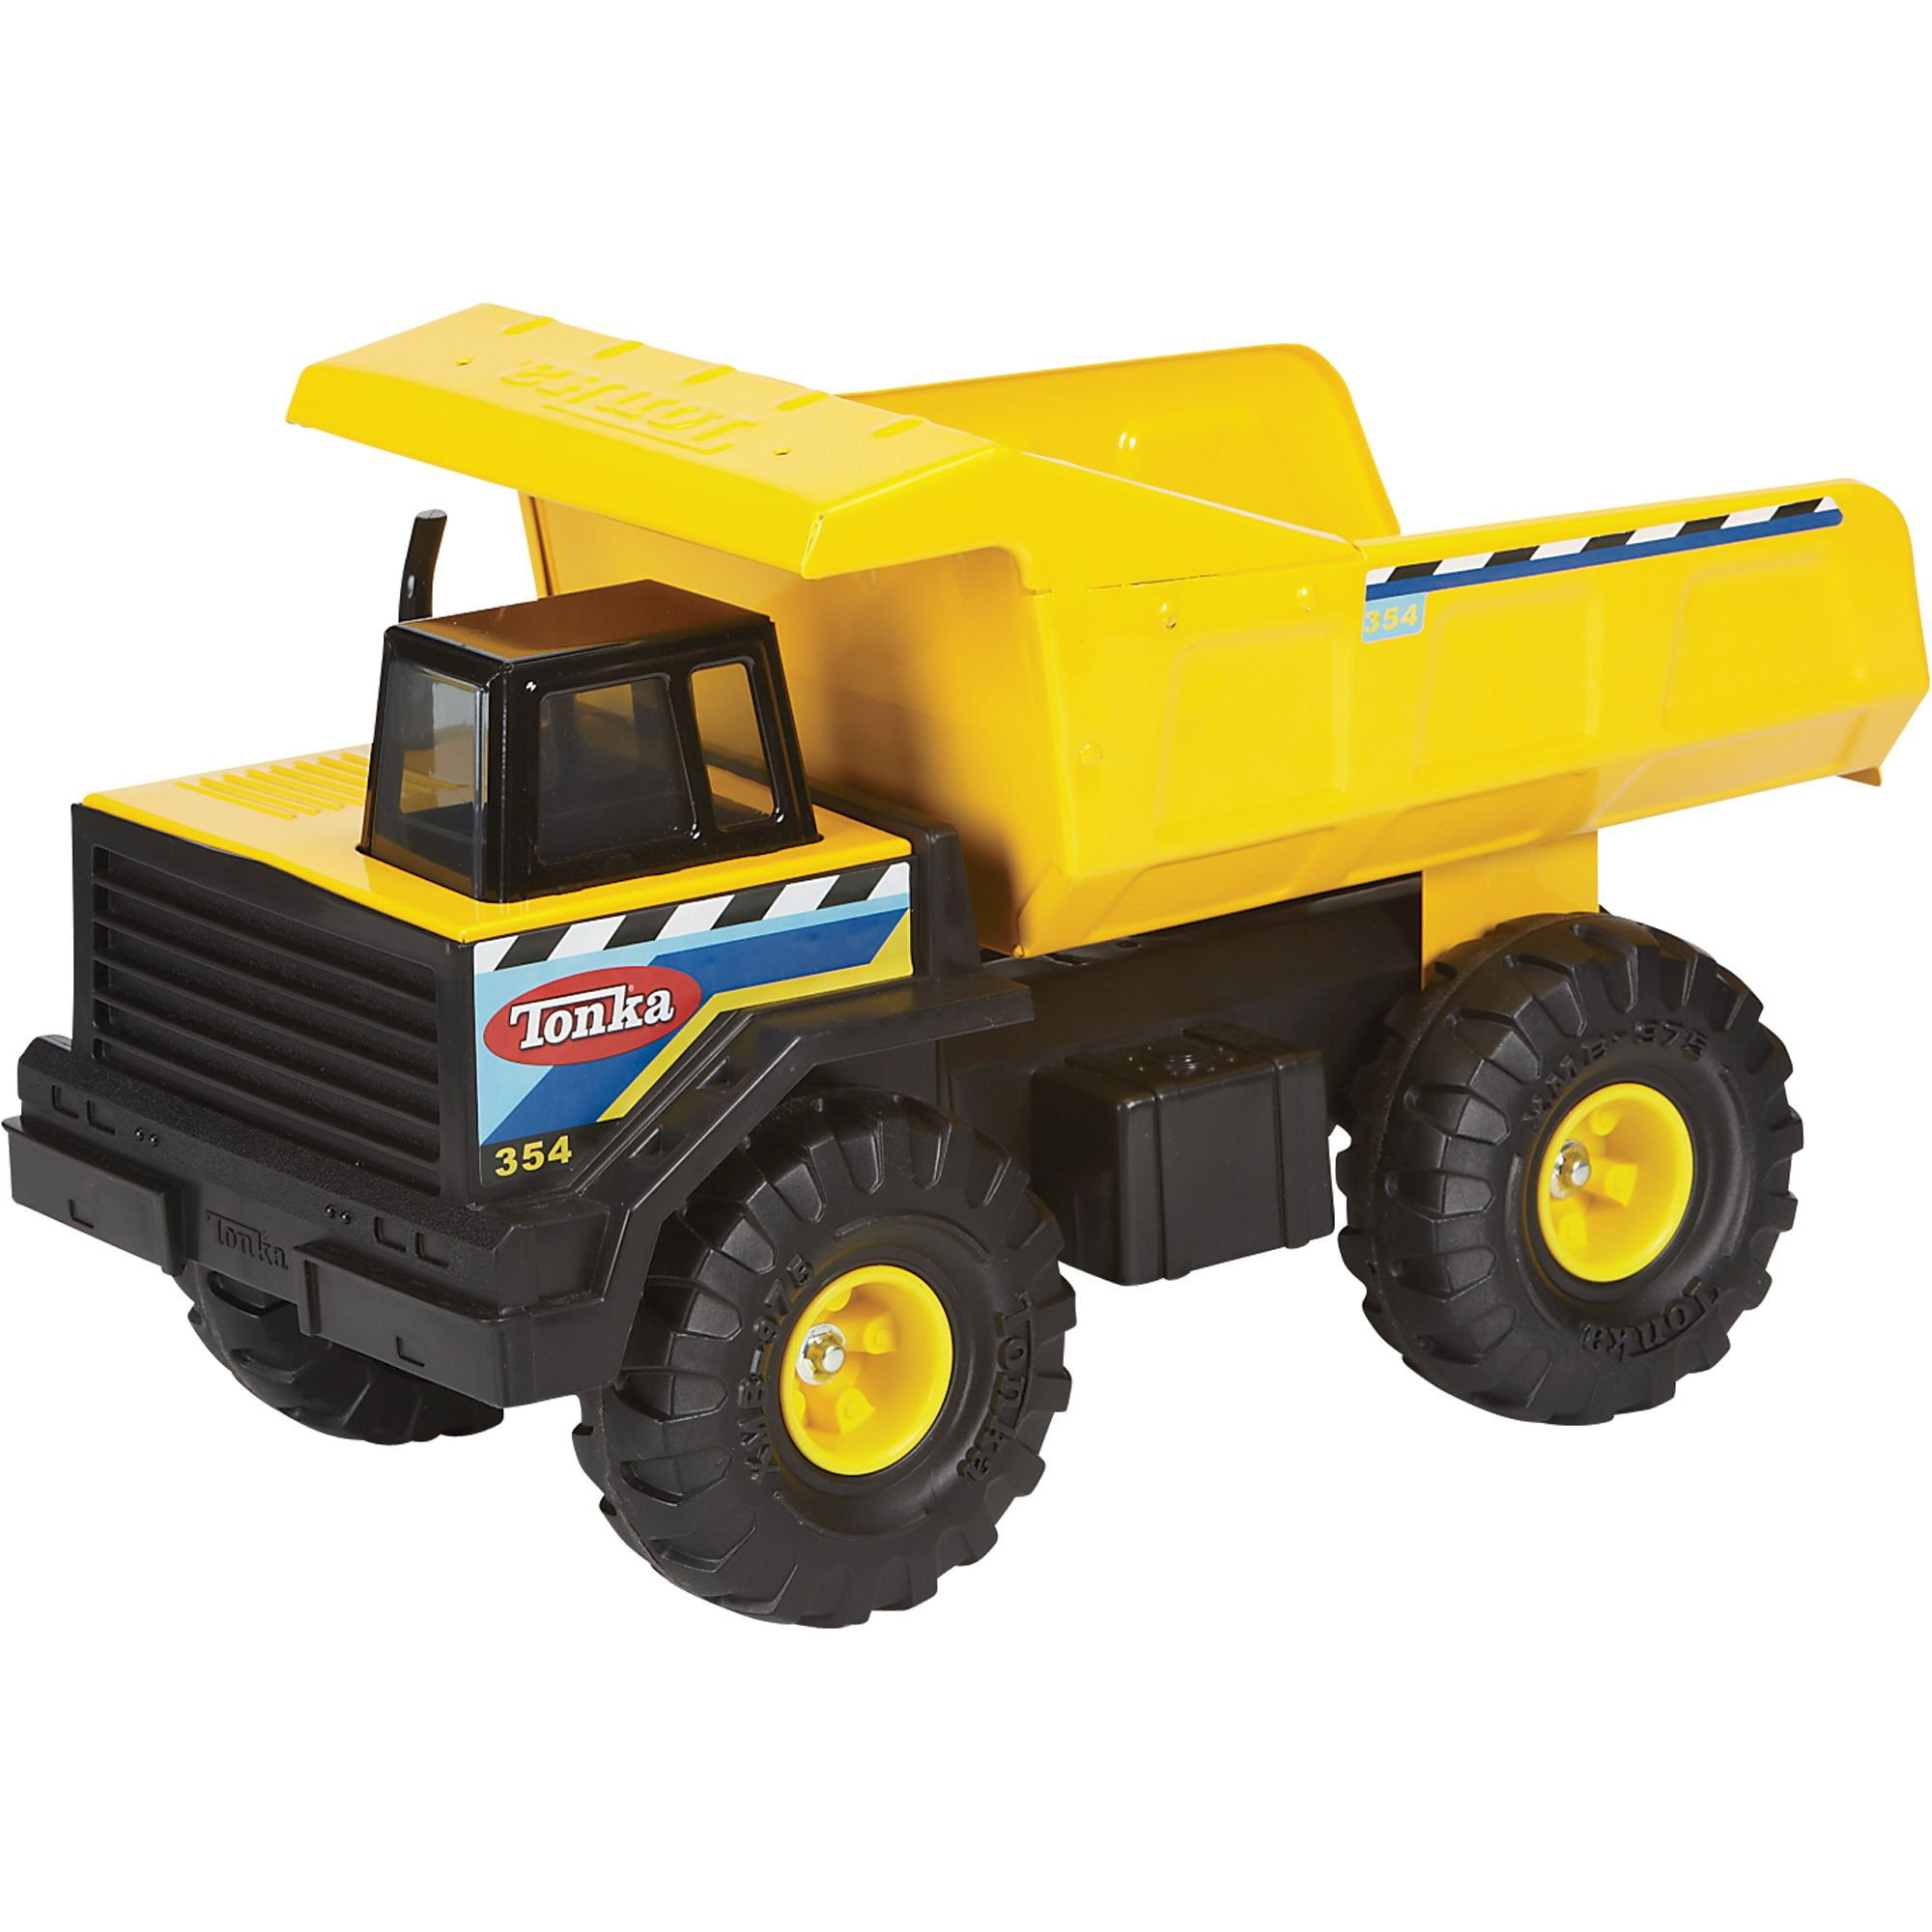 Tonka classic steel mighty dump truck vehicle the tonka classic steel mighty dump truck is built for hauling this sturdy steel construction vehicle is